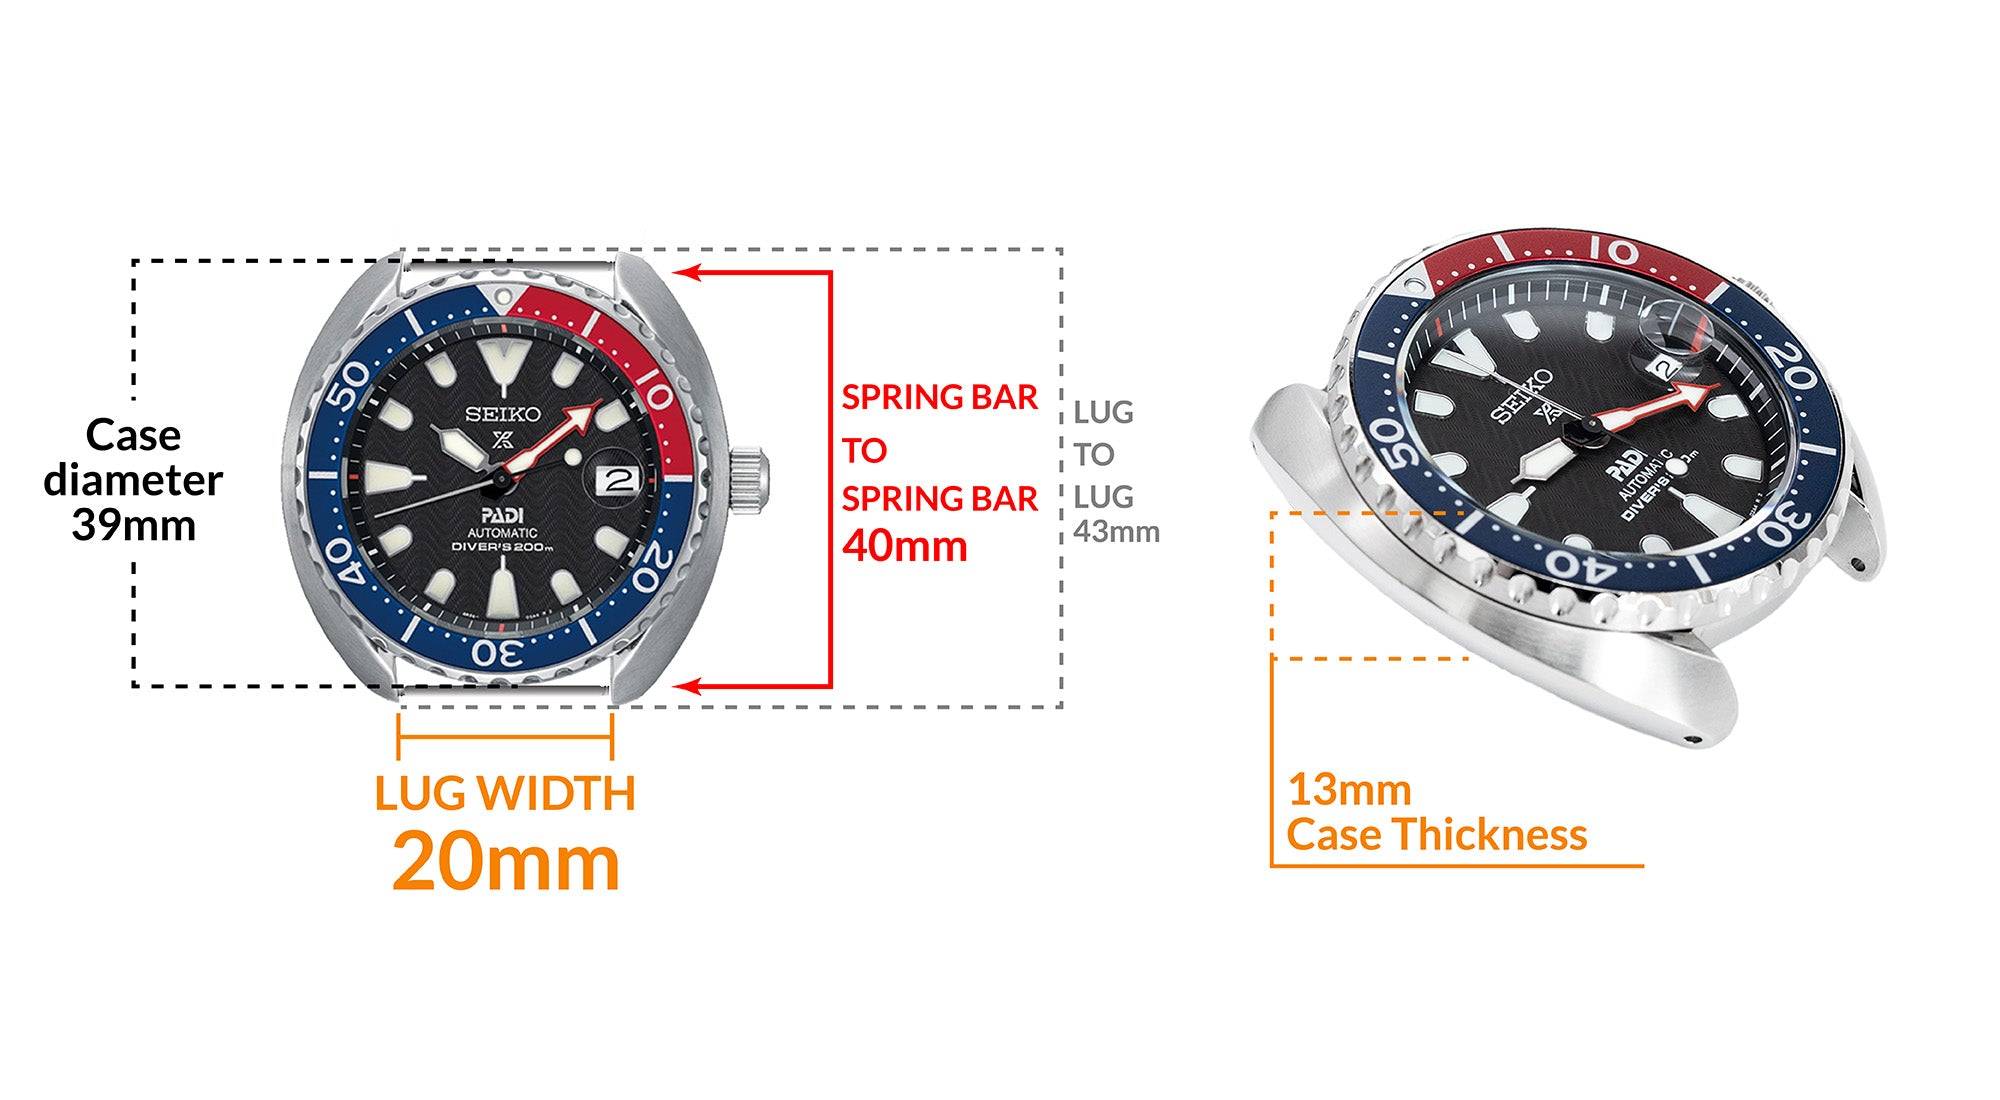 Seiko Mini Turtle Padi SRPC41 - Details Seiko watch size, Lug width and case dimensions